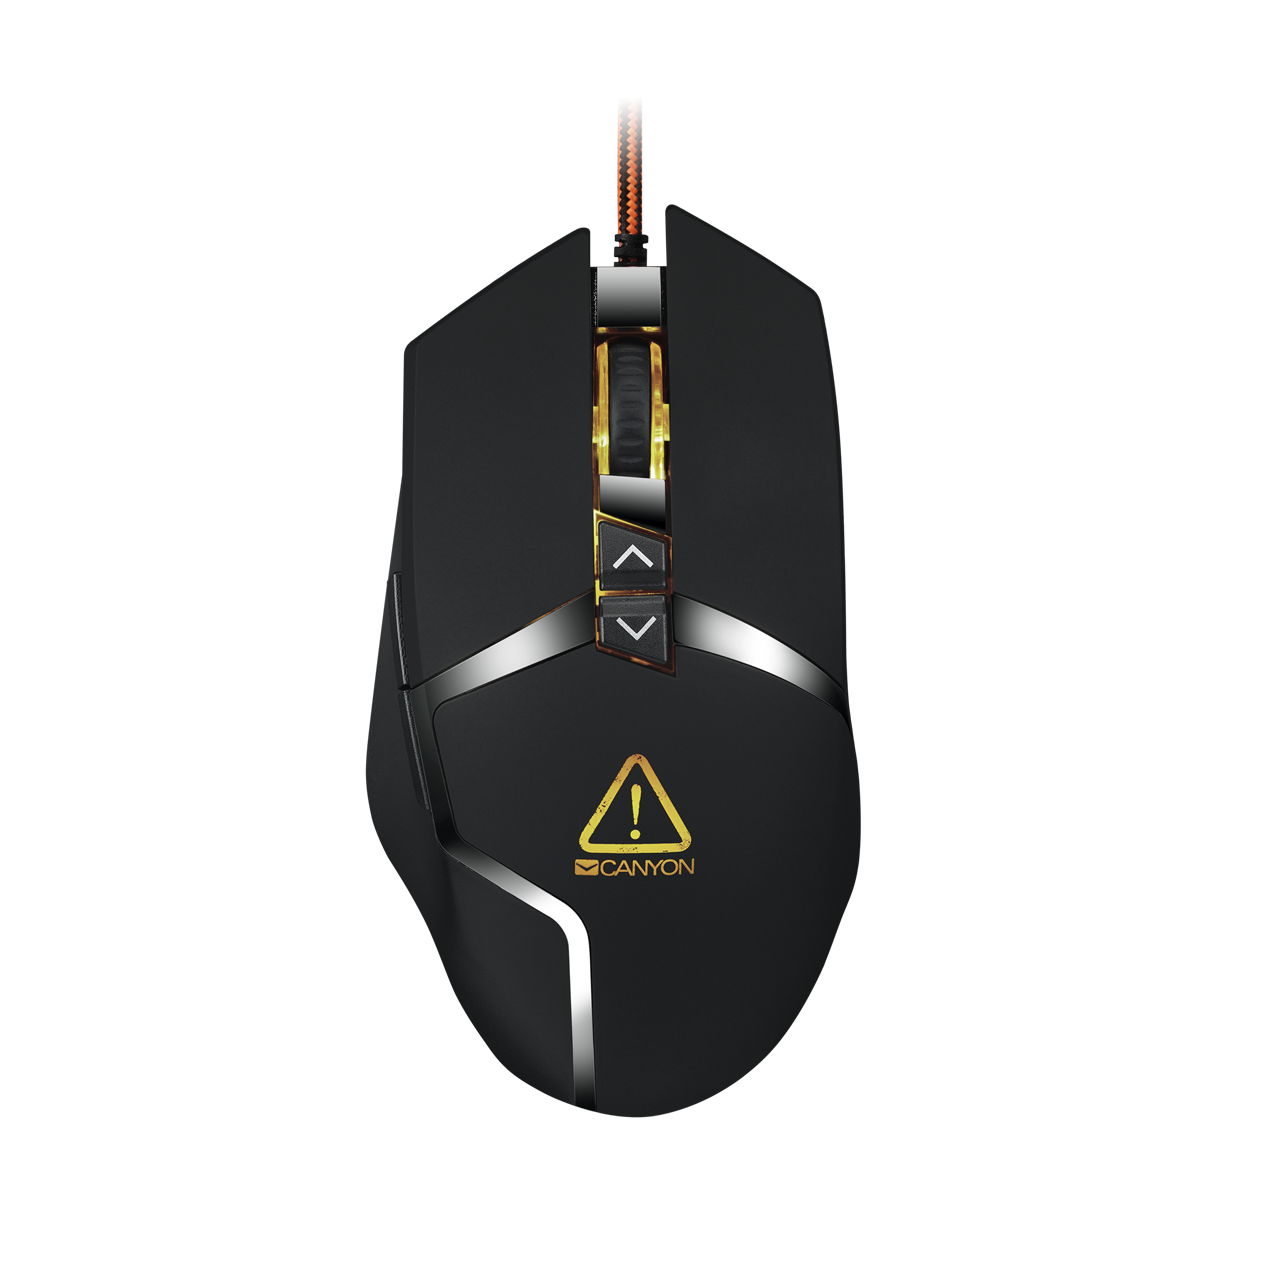 Canyon Gaming Wired Mouse